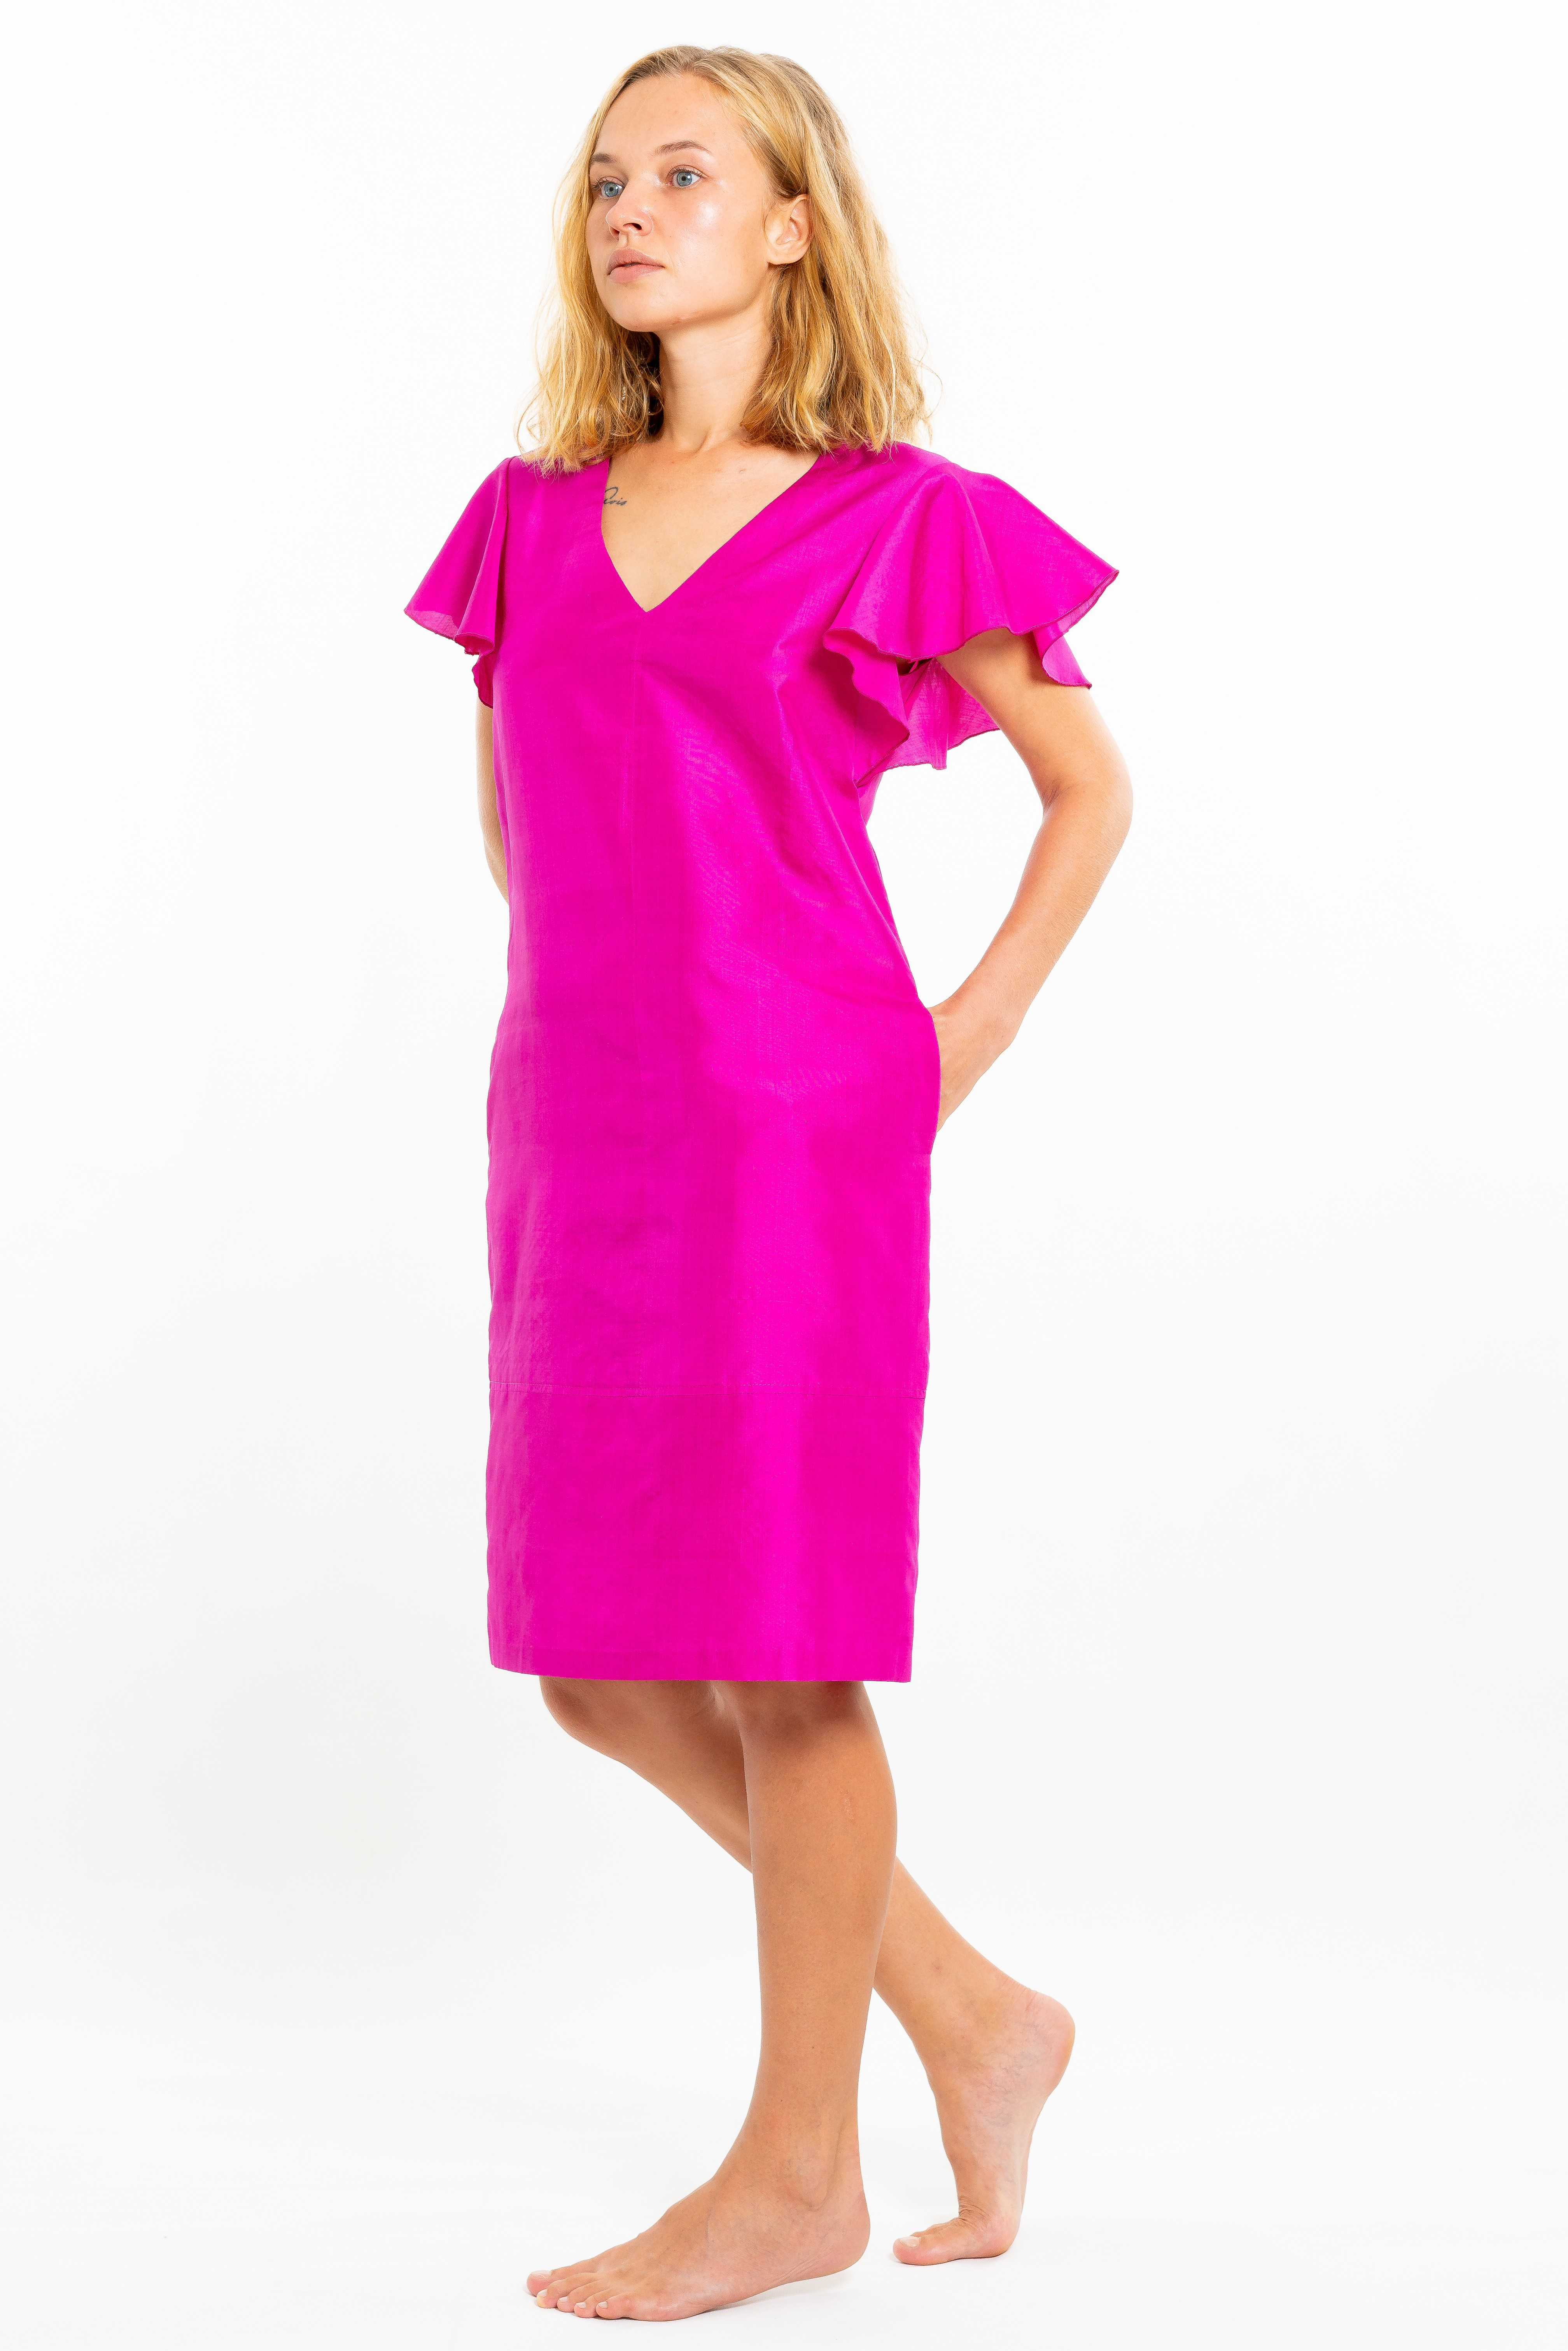 pink dress with short sleeves in natural silk, V neckline, invisible zipper on the side